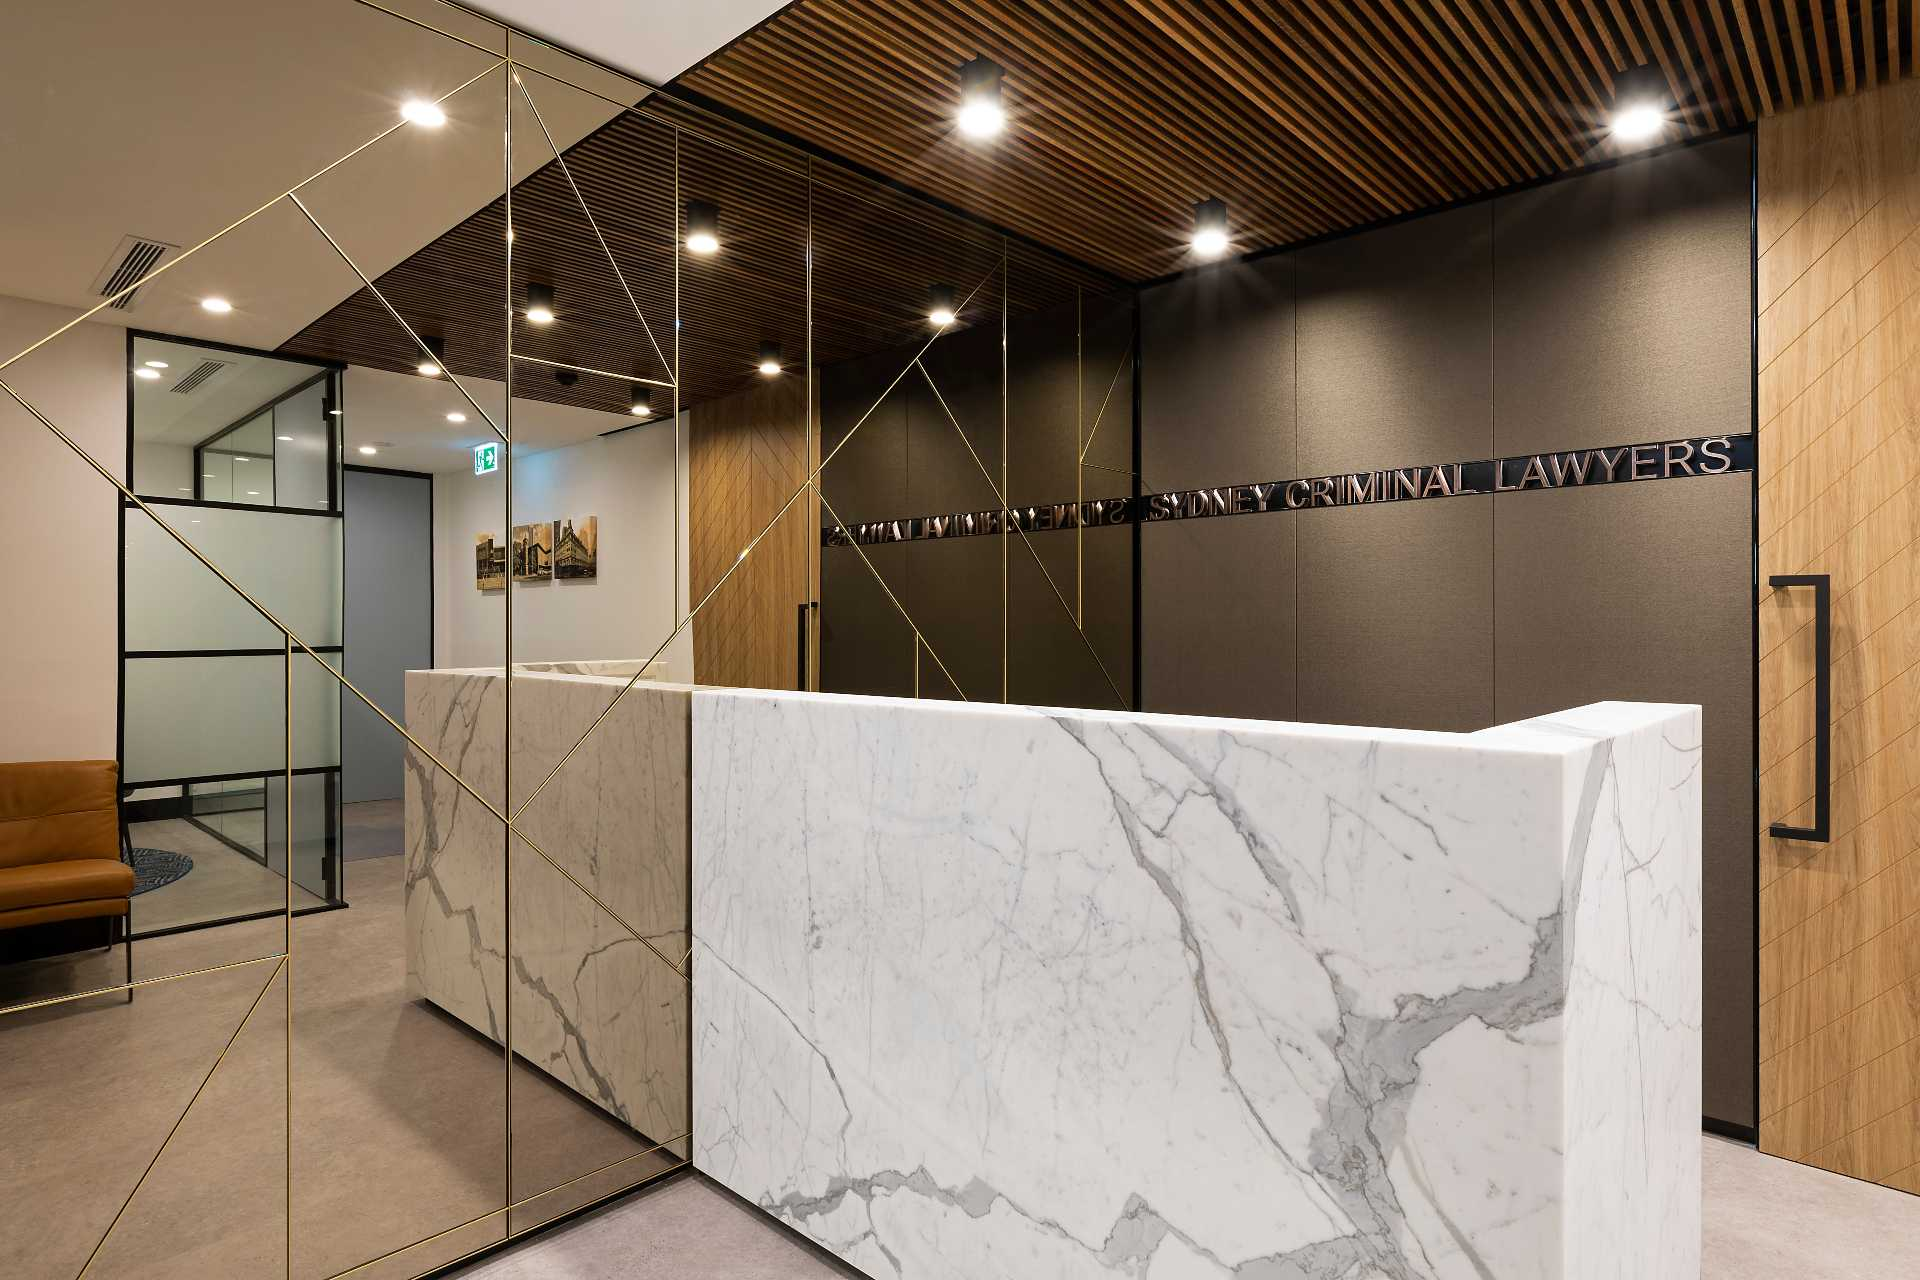 Sydney Criminal Lawyers City office